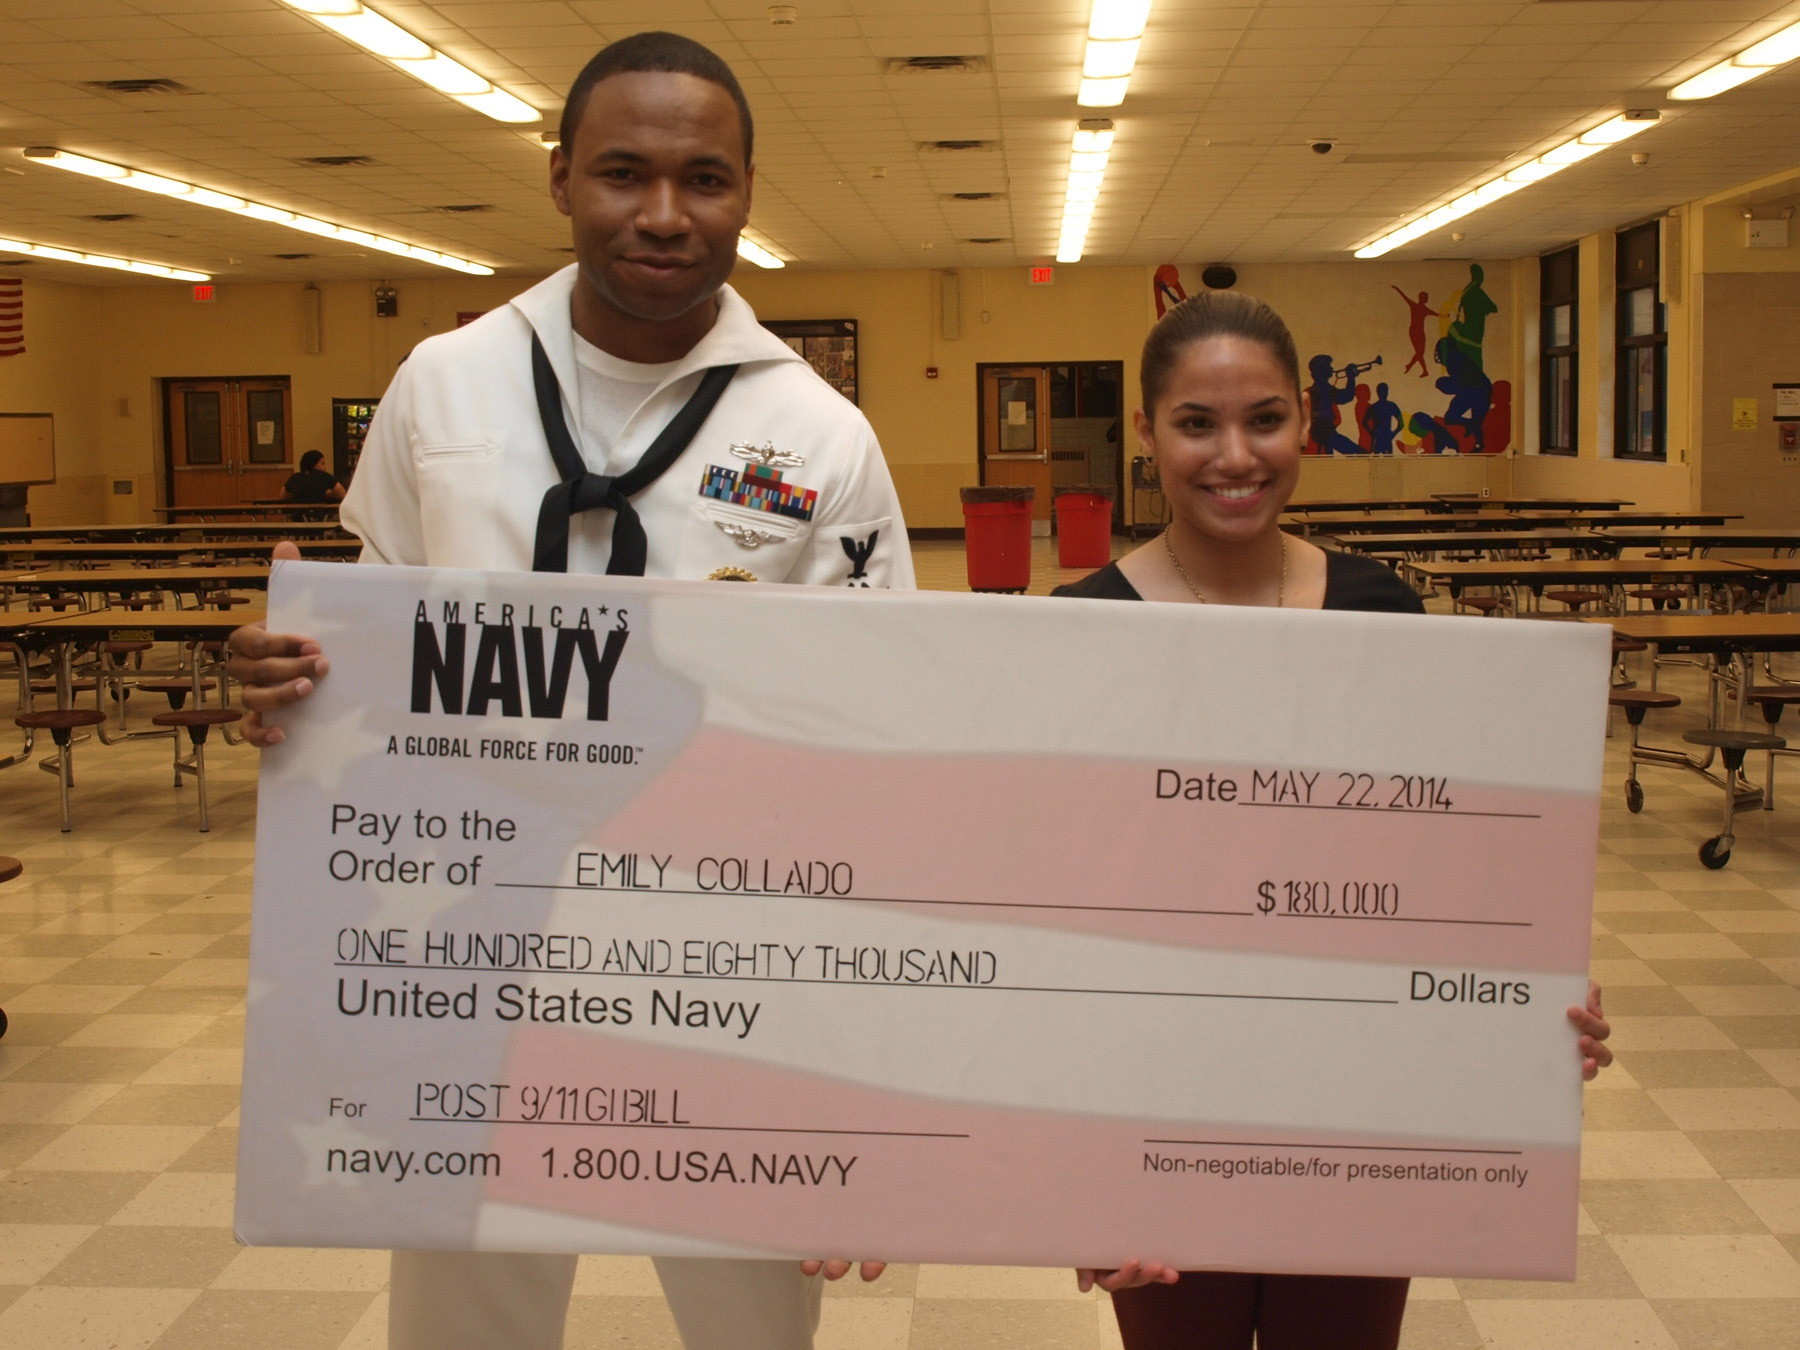 SCHOLARSHIP RECEIPIENT: Freeport High School senior Emily Collado was awarded the $180,000 United States Navy G.I. Bill Scholarship by Petty Officer 2nd Class Jamal Joe.